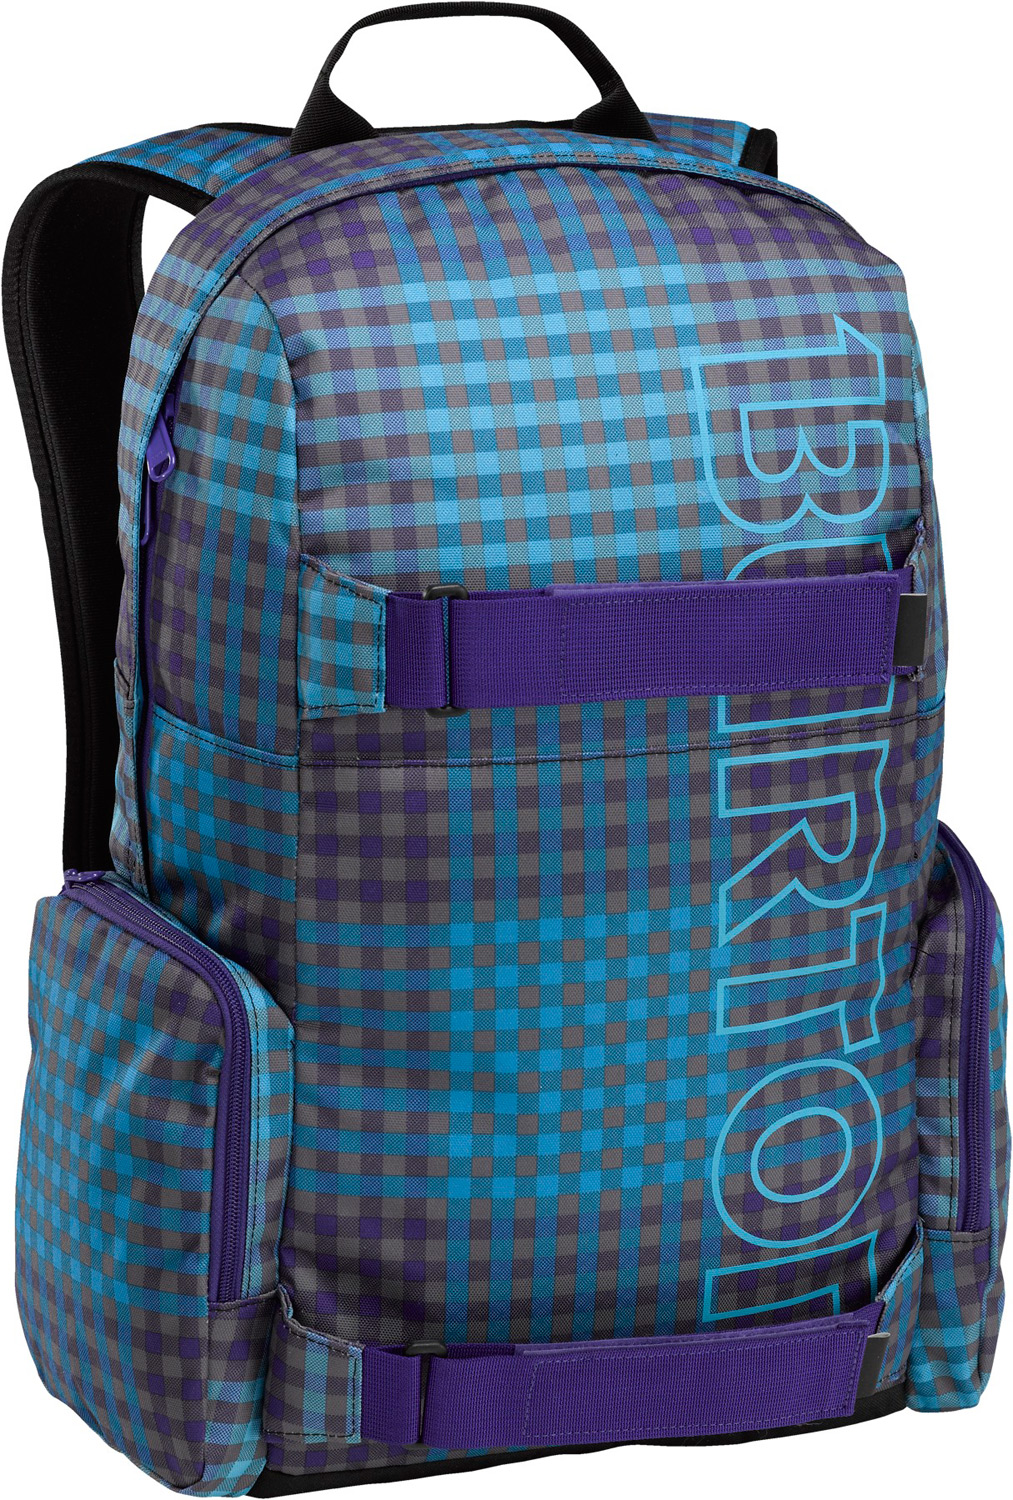 Snowboard Full-featured skate pack with big time branding. Padded sleeve stashes your laptop, exterior organization for easy gear access, plus skate straps for carrying a deck, jacket, or other gear.Key Features of the Burton Emphasis Backpack: Fabrication: 600D Polyester with Distressed PU Print [FREnDS colorway] Fabrication: 1680D Polyester Herringbone PU [cricket Herringbone colorway] Fabrication: 600D Polyester / 300D Polyester Dobby [all other colorways] Padded Laptop Sleeve [11.5in x 10in x 1.5in] [29cm x 26cm x 4cm] Vertical Skate carry cush Ergonomic Shoulder Harness with adjustable Sternum Strap Fleece-Lined Internal Pocket custom Ear Buds Included with FREnDS colorway [18.5in x 12in x 7.5in] [47cm x 31cm x 19cm] 26L - $31.95